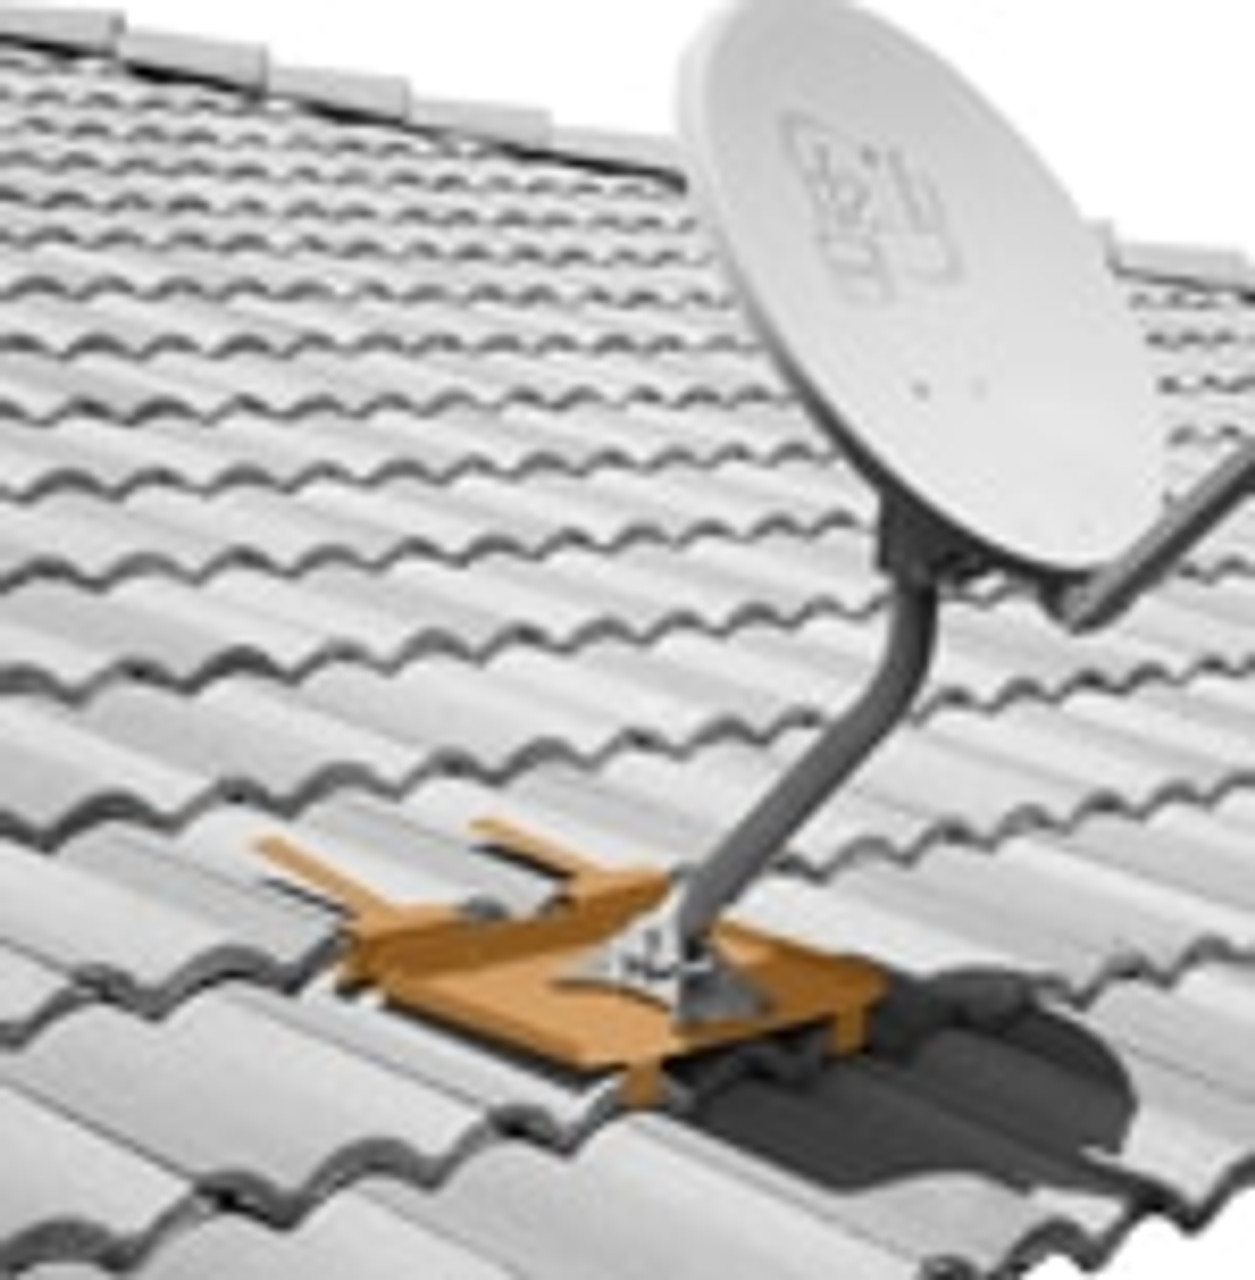 Antenna Mount For Tile Roof Suitable For Dish Large Antennas